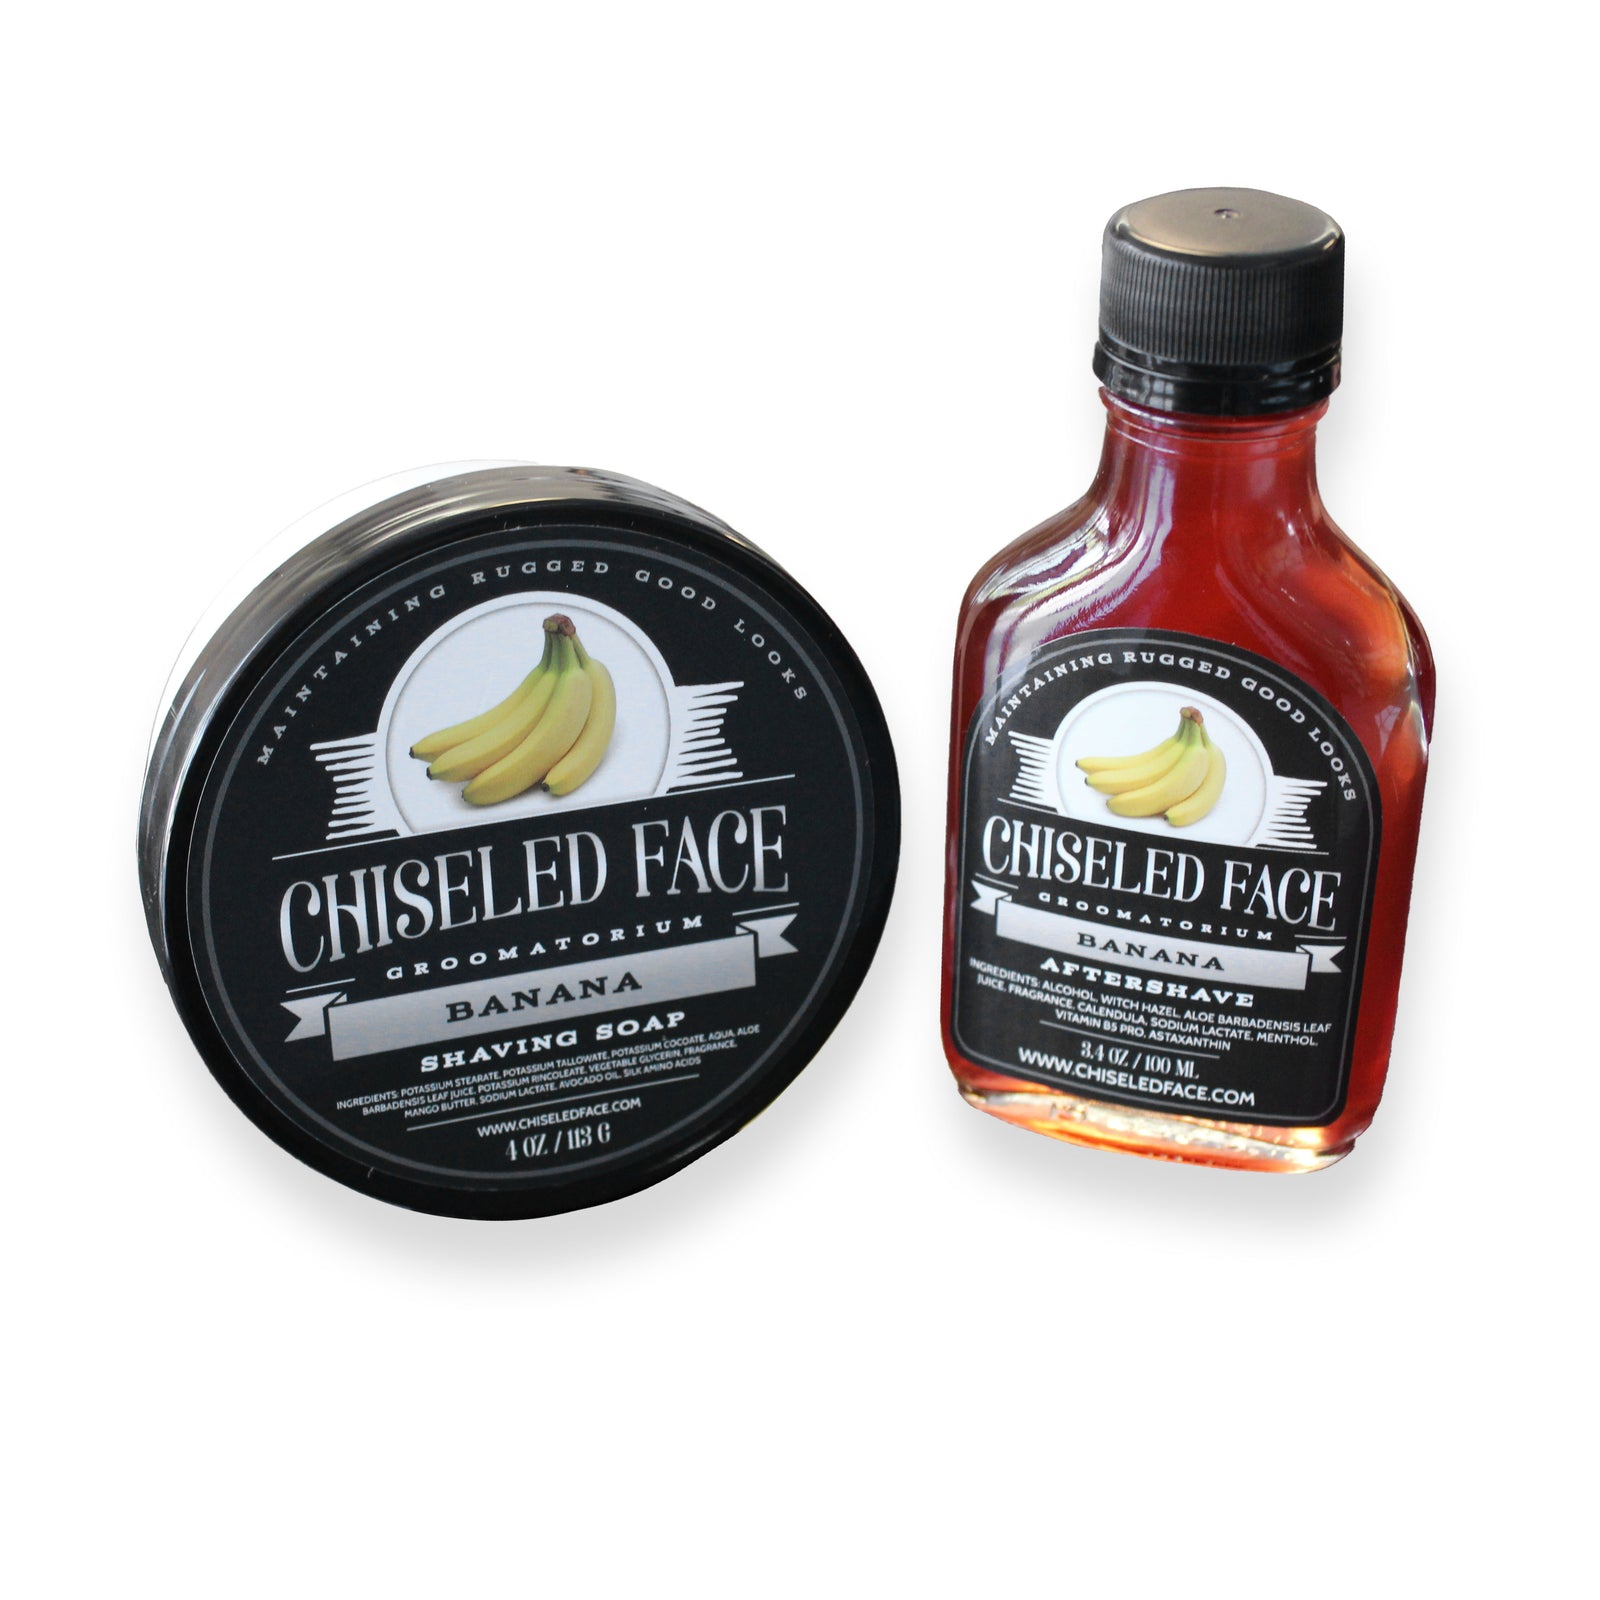 Chiseled Face – Banana – Shaving Soap